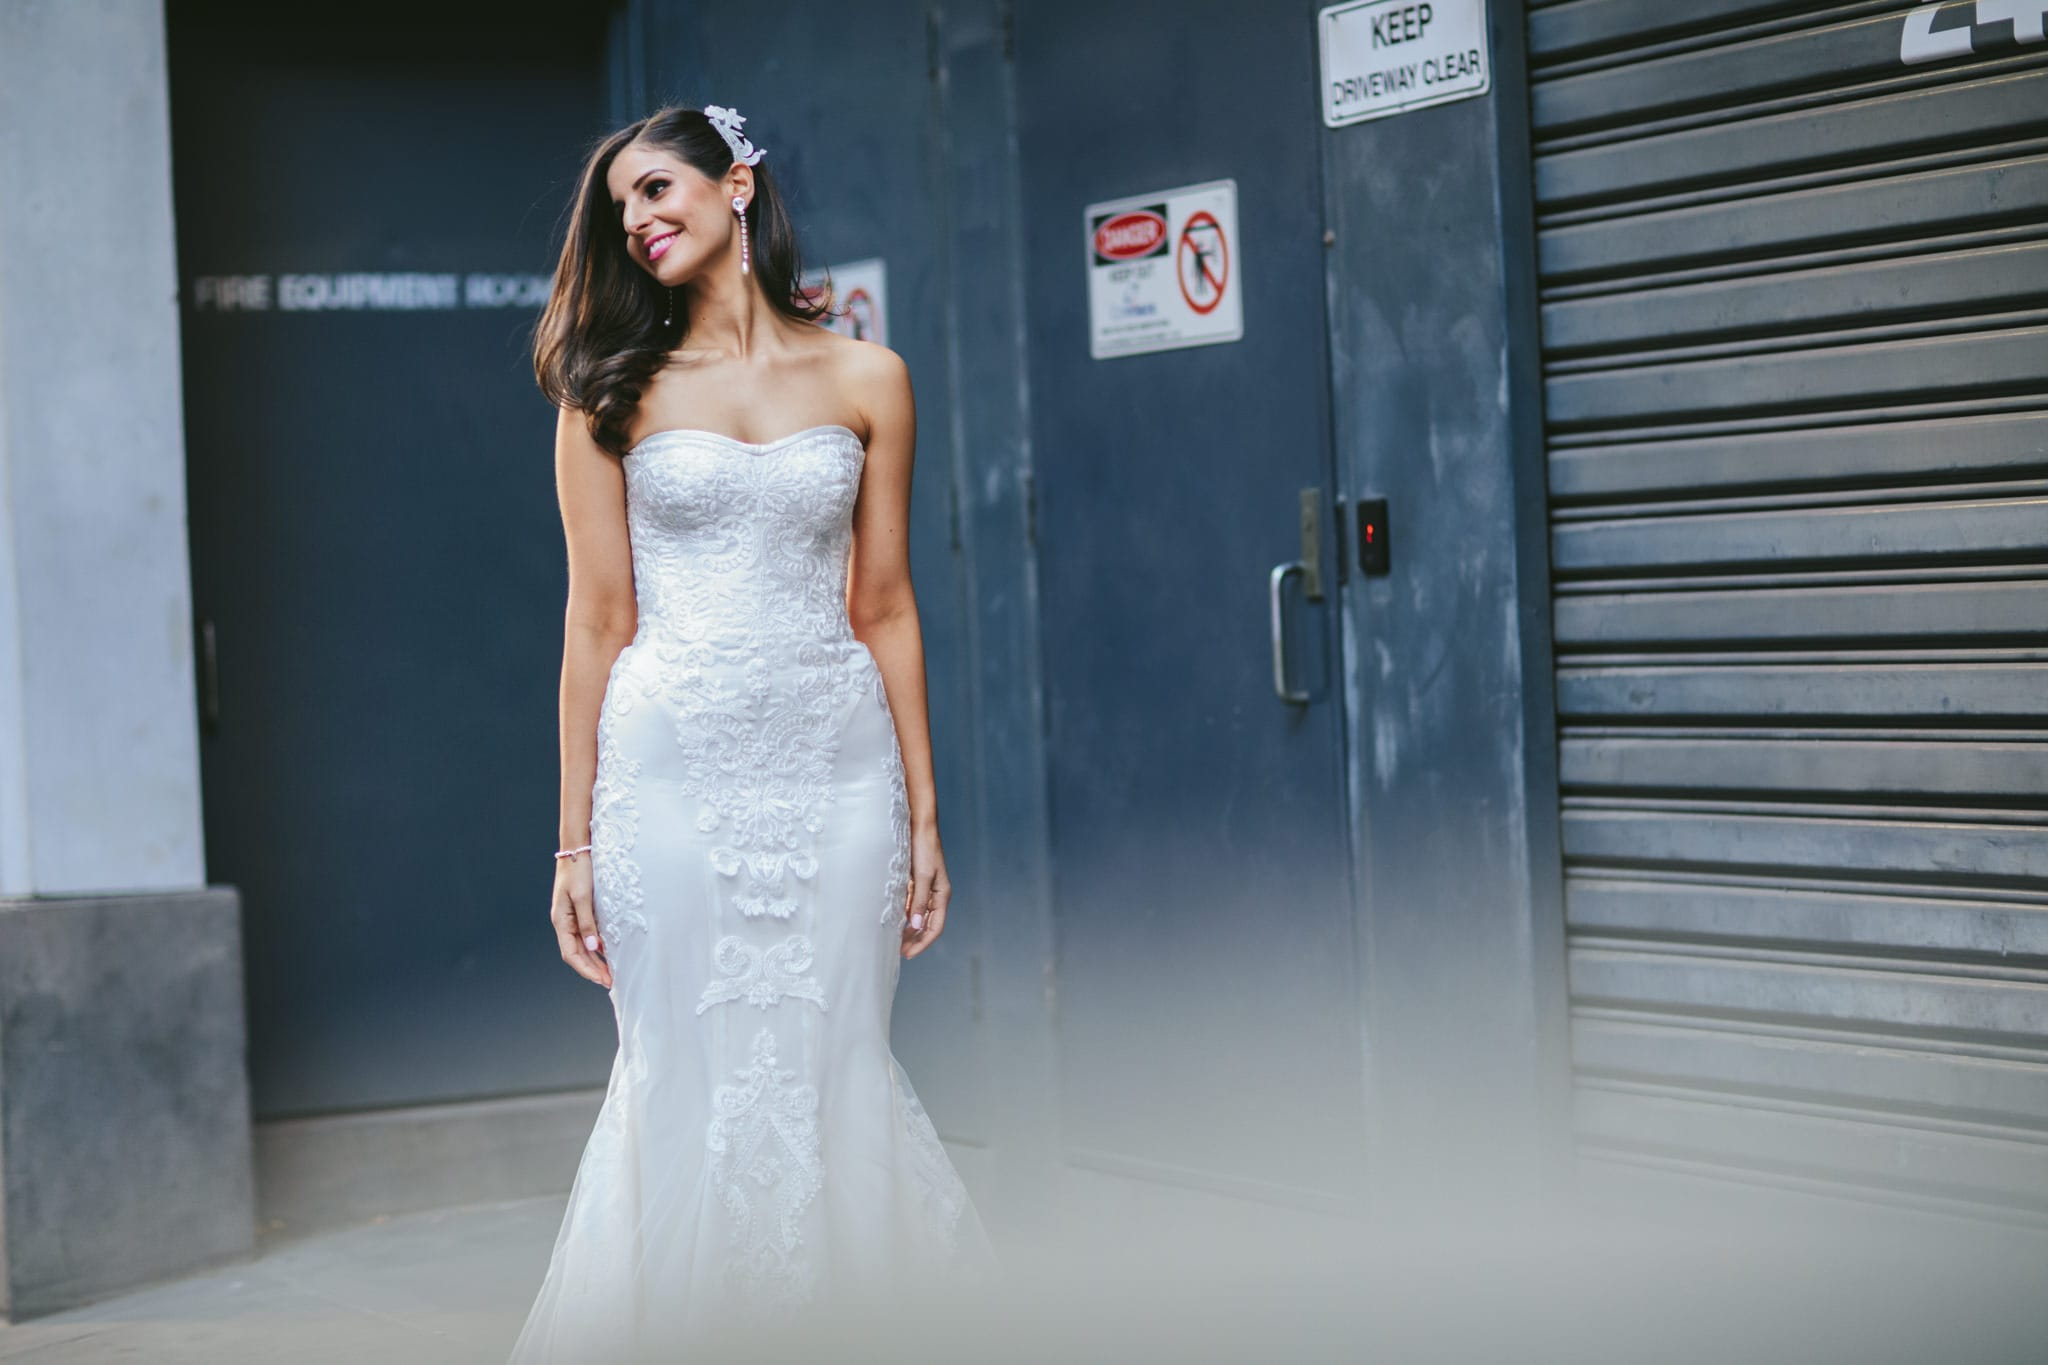 bride in urban city photography in melbourne - Australian Photographer